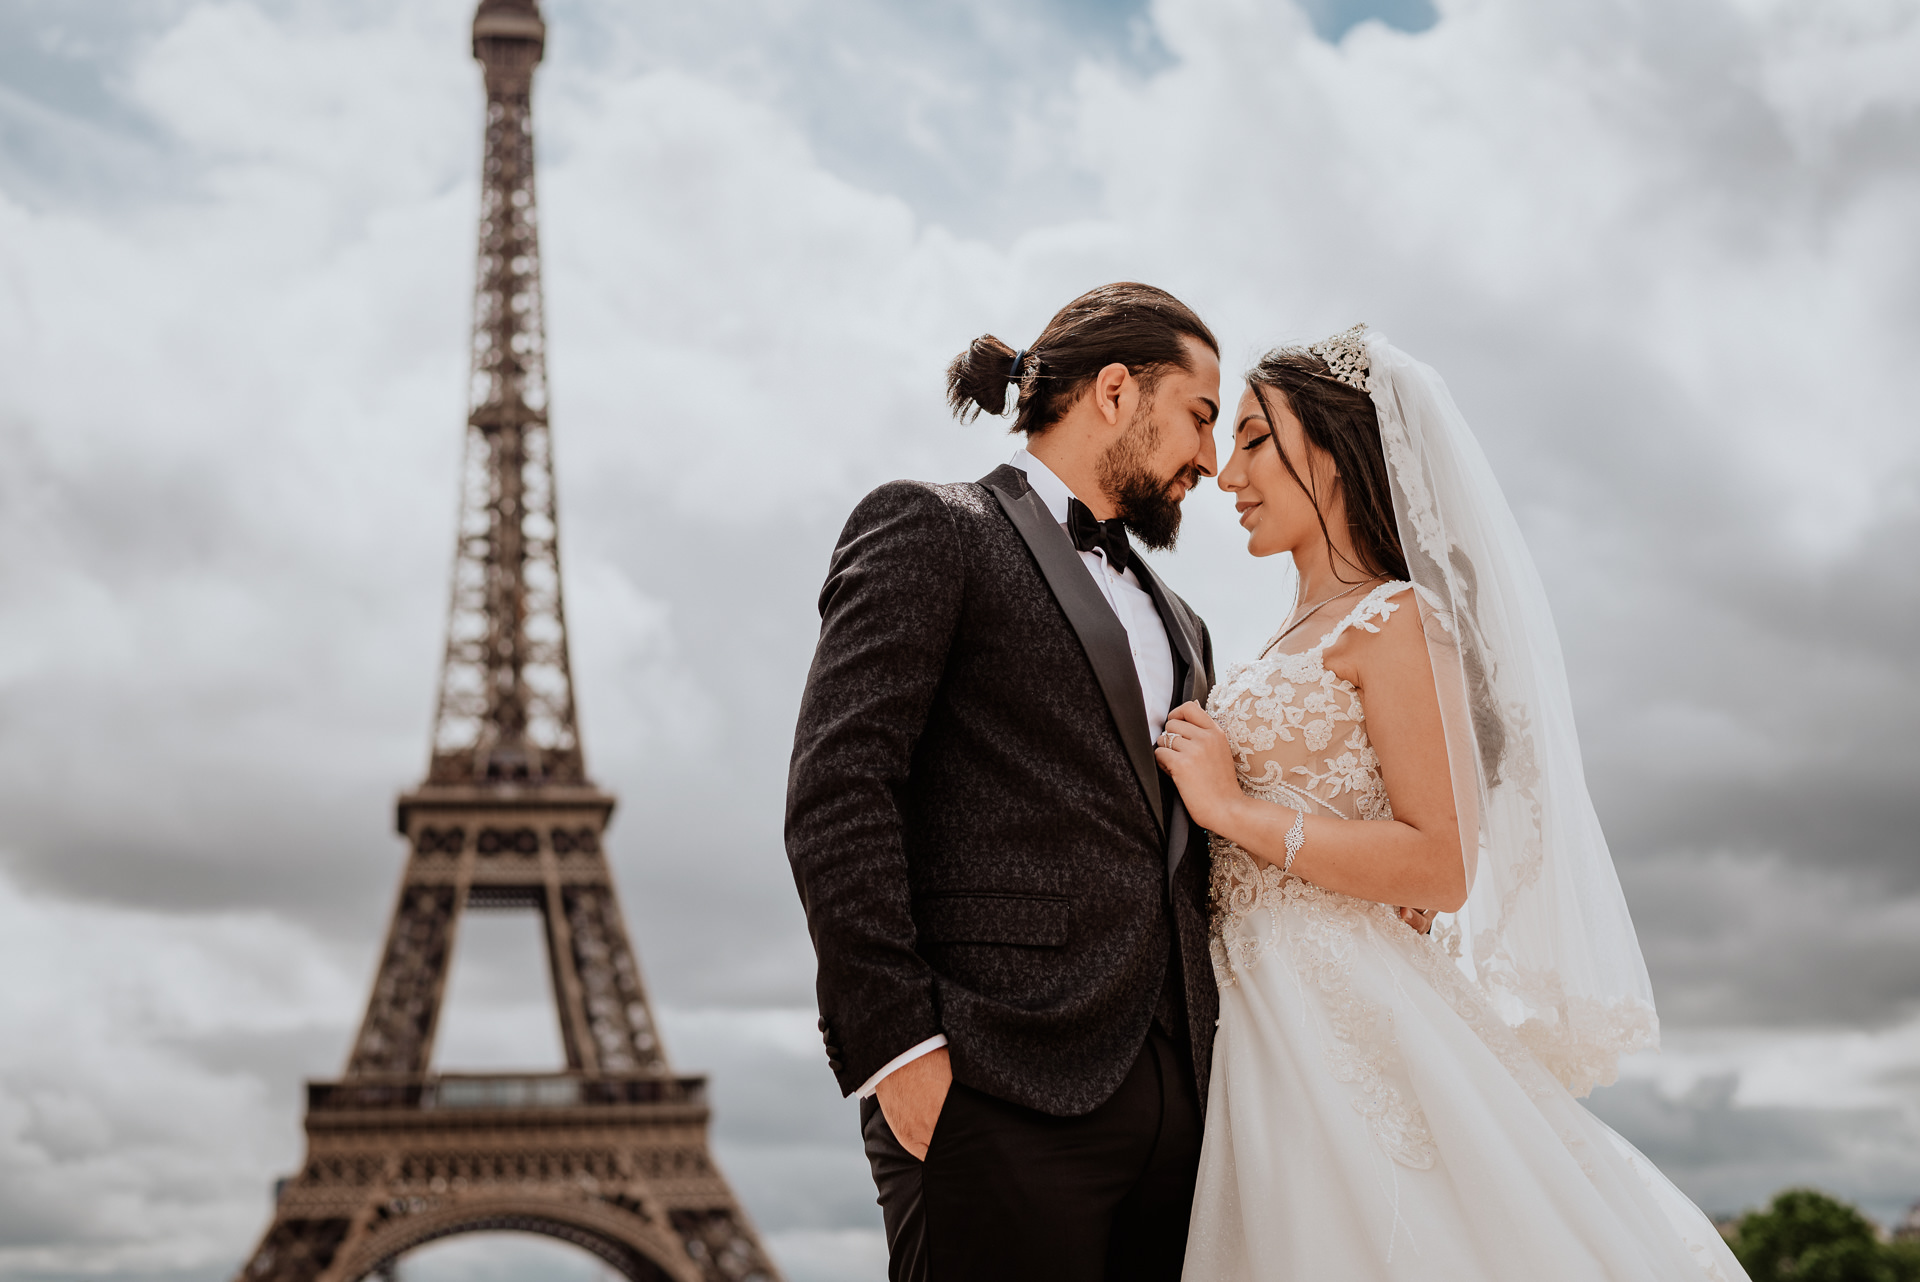 paris wedding proposal photoshoot